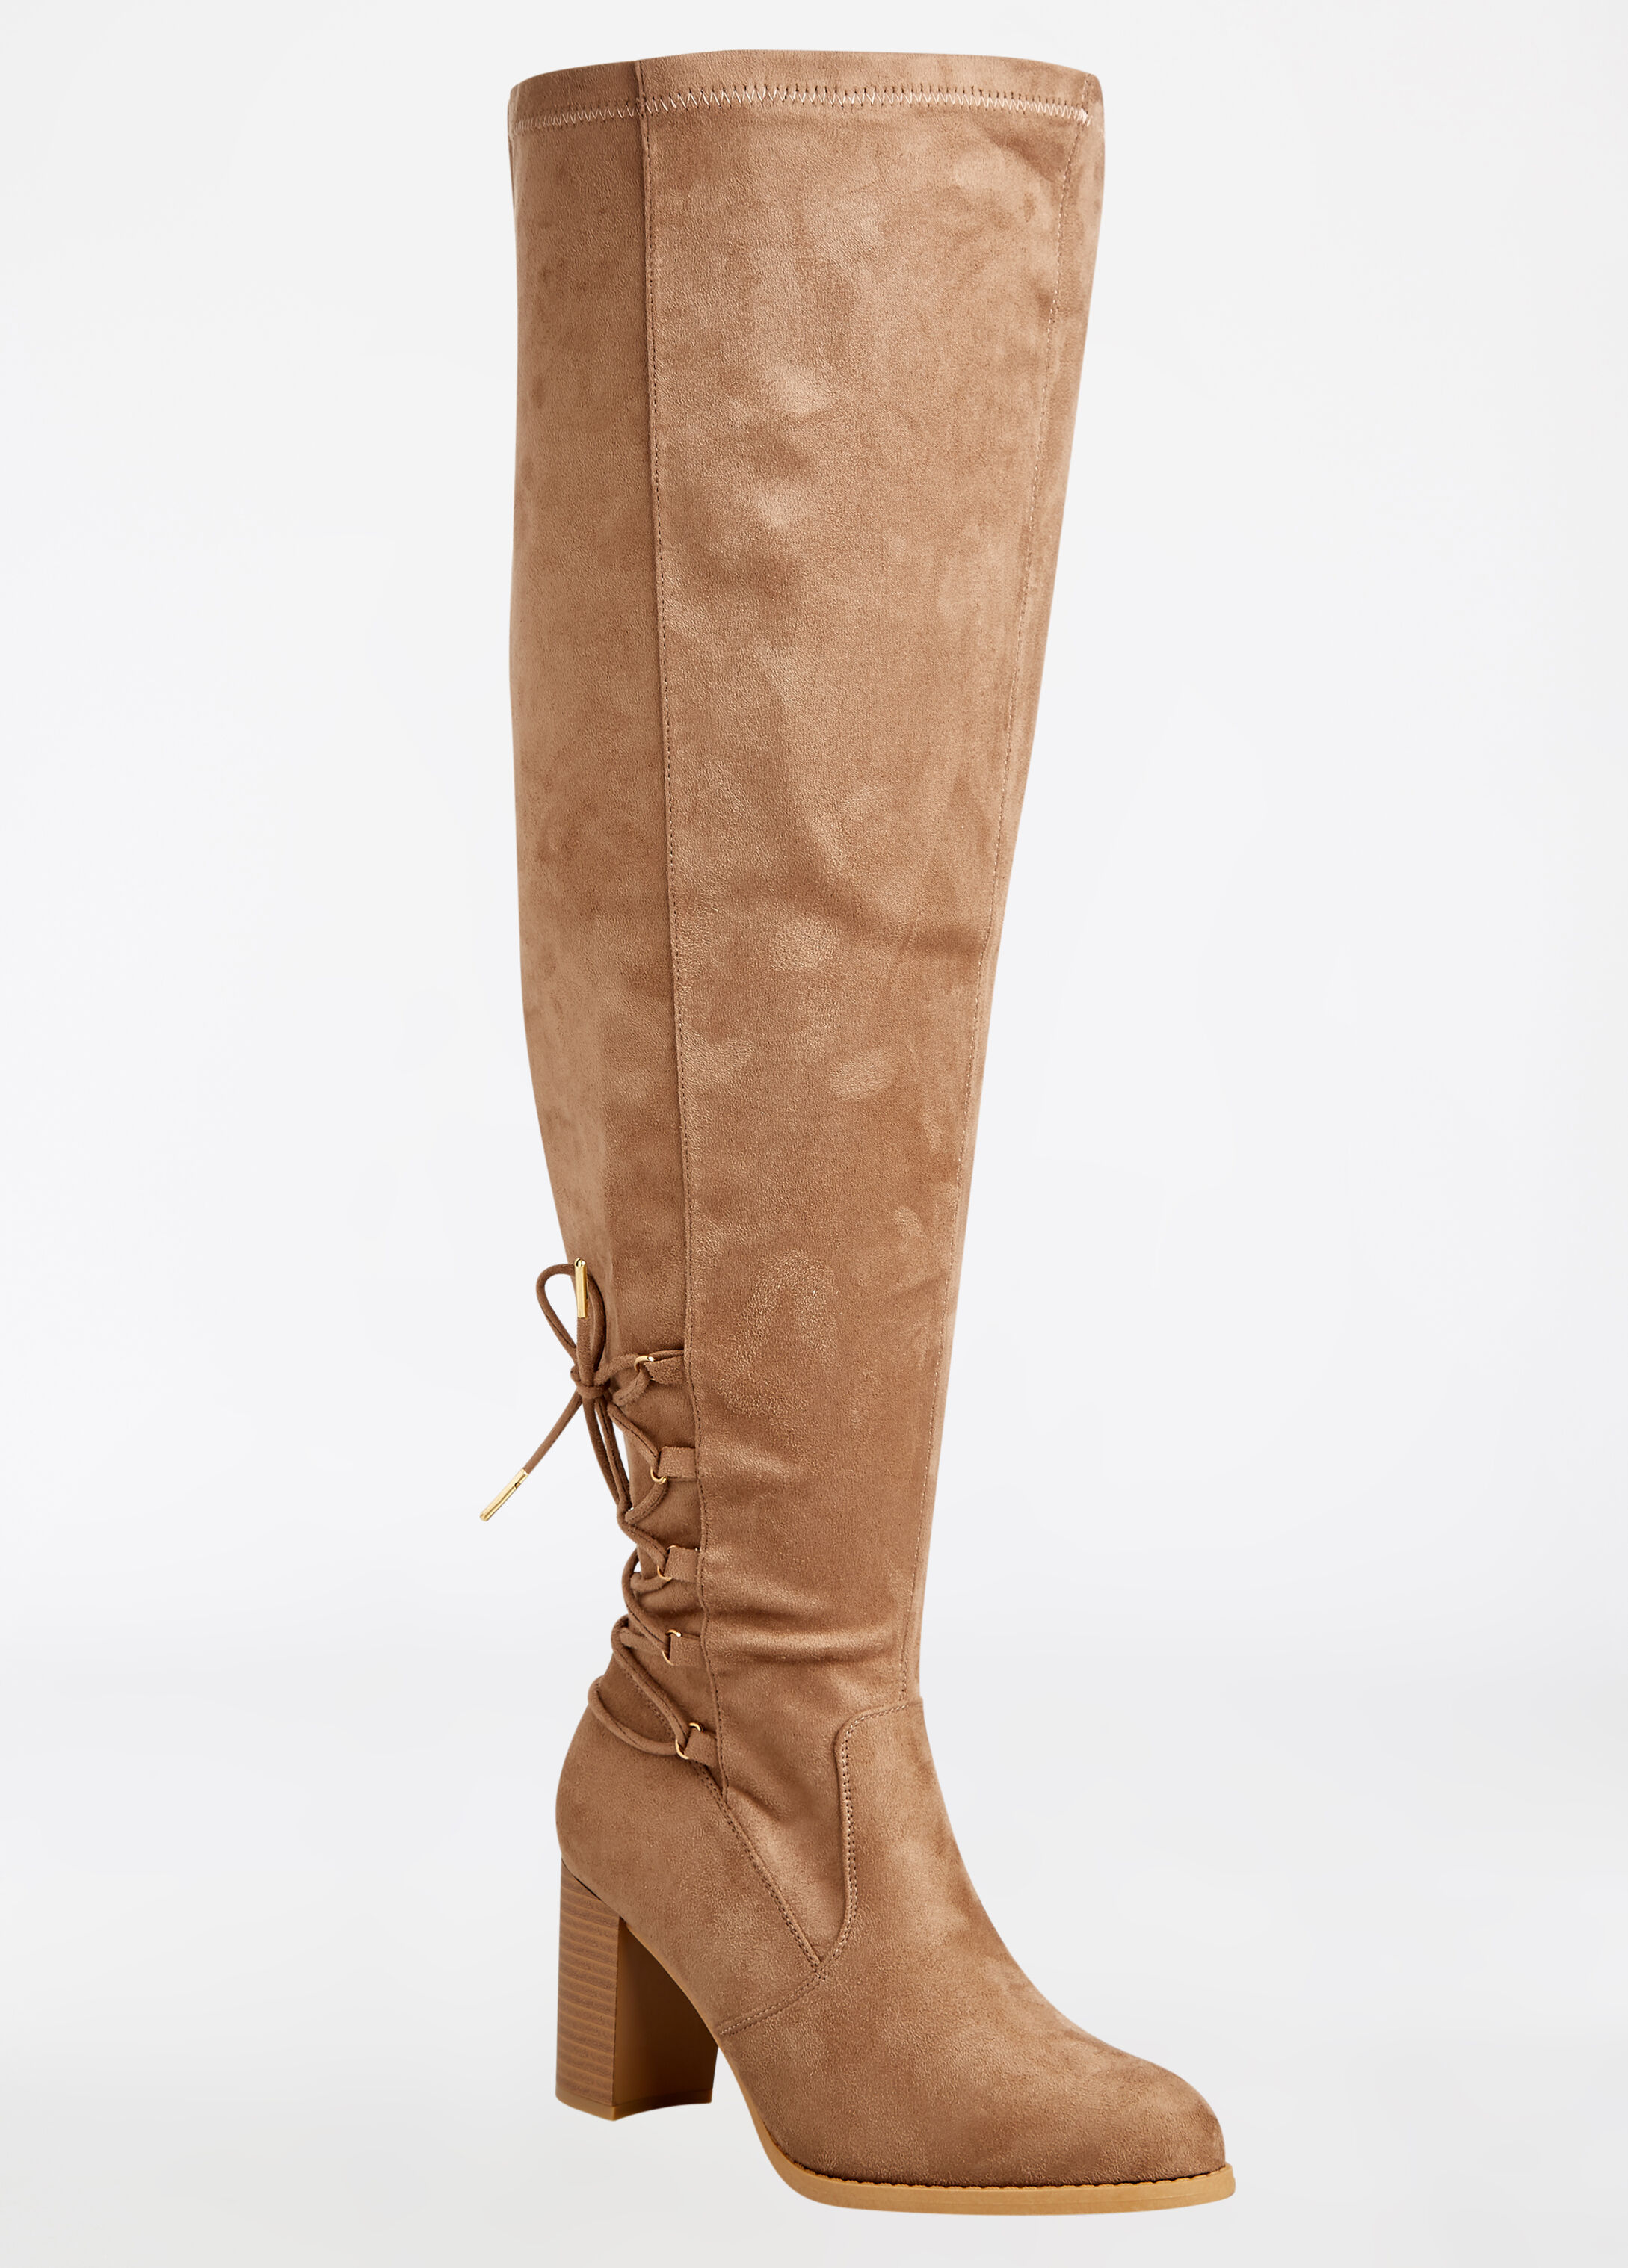 Over the Knee Faux Suede Lace-Up Back Boot - Wide Width Camel Taupe - Clearance